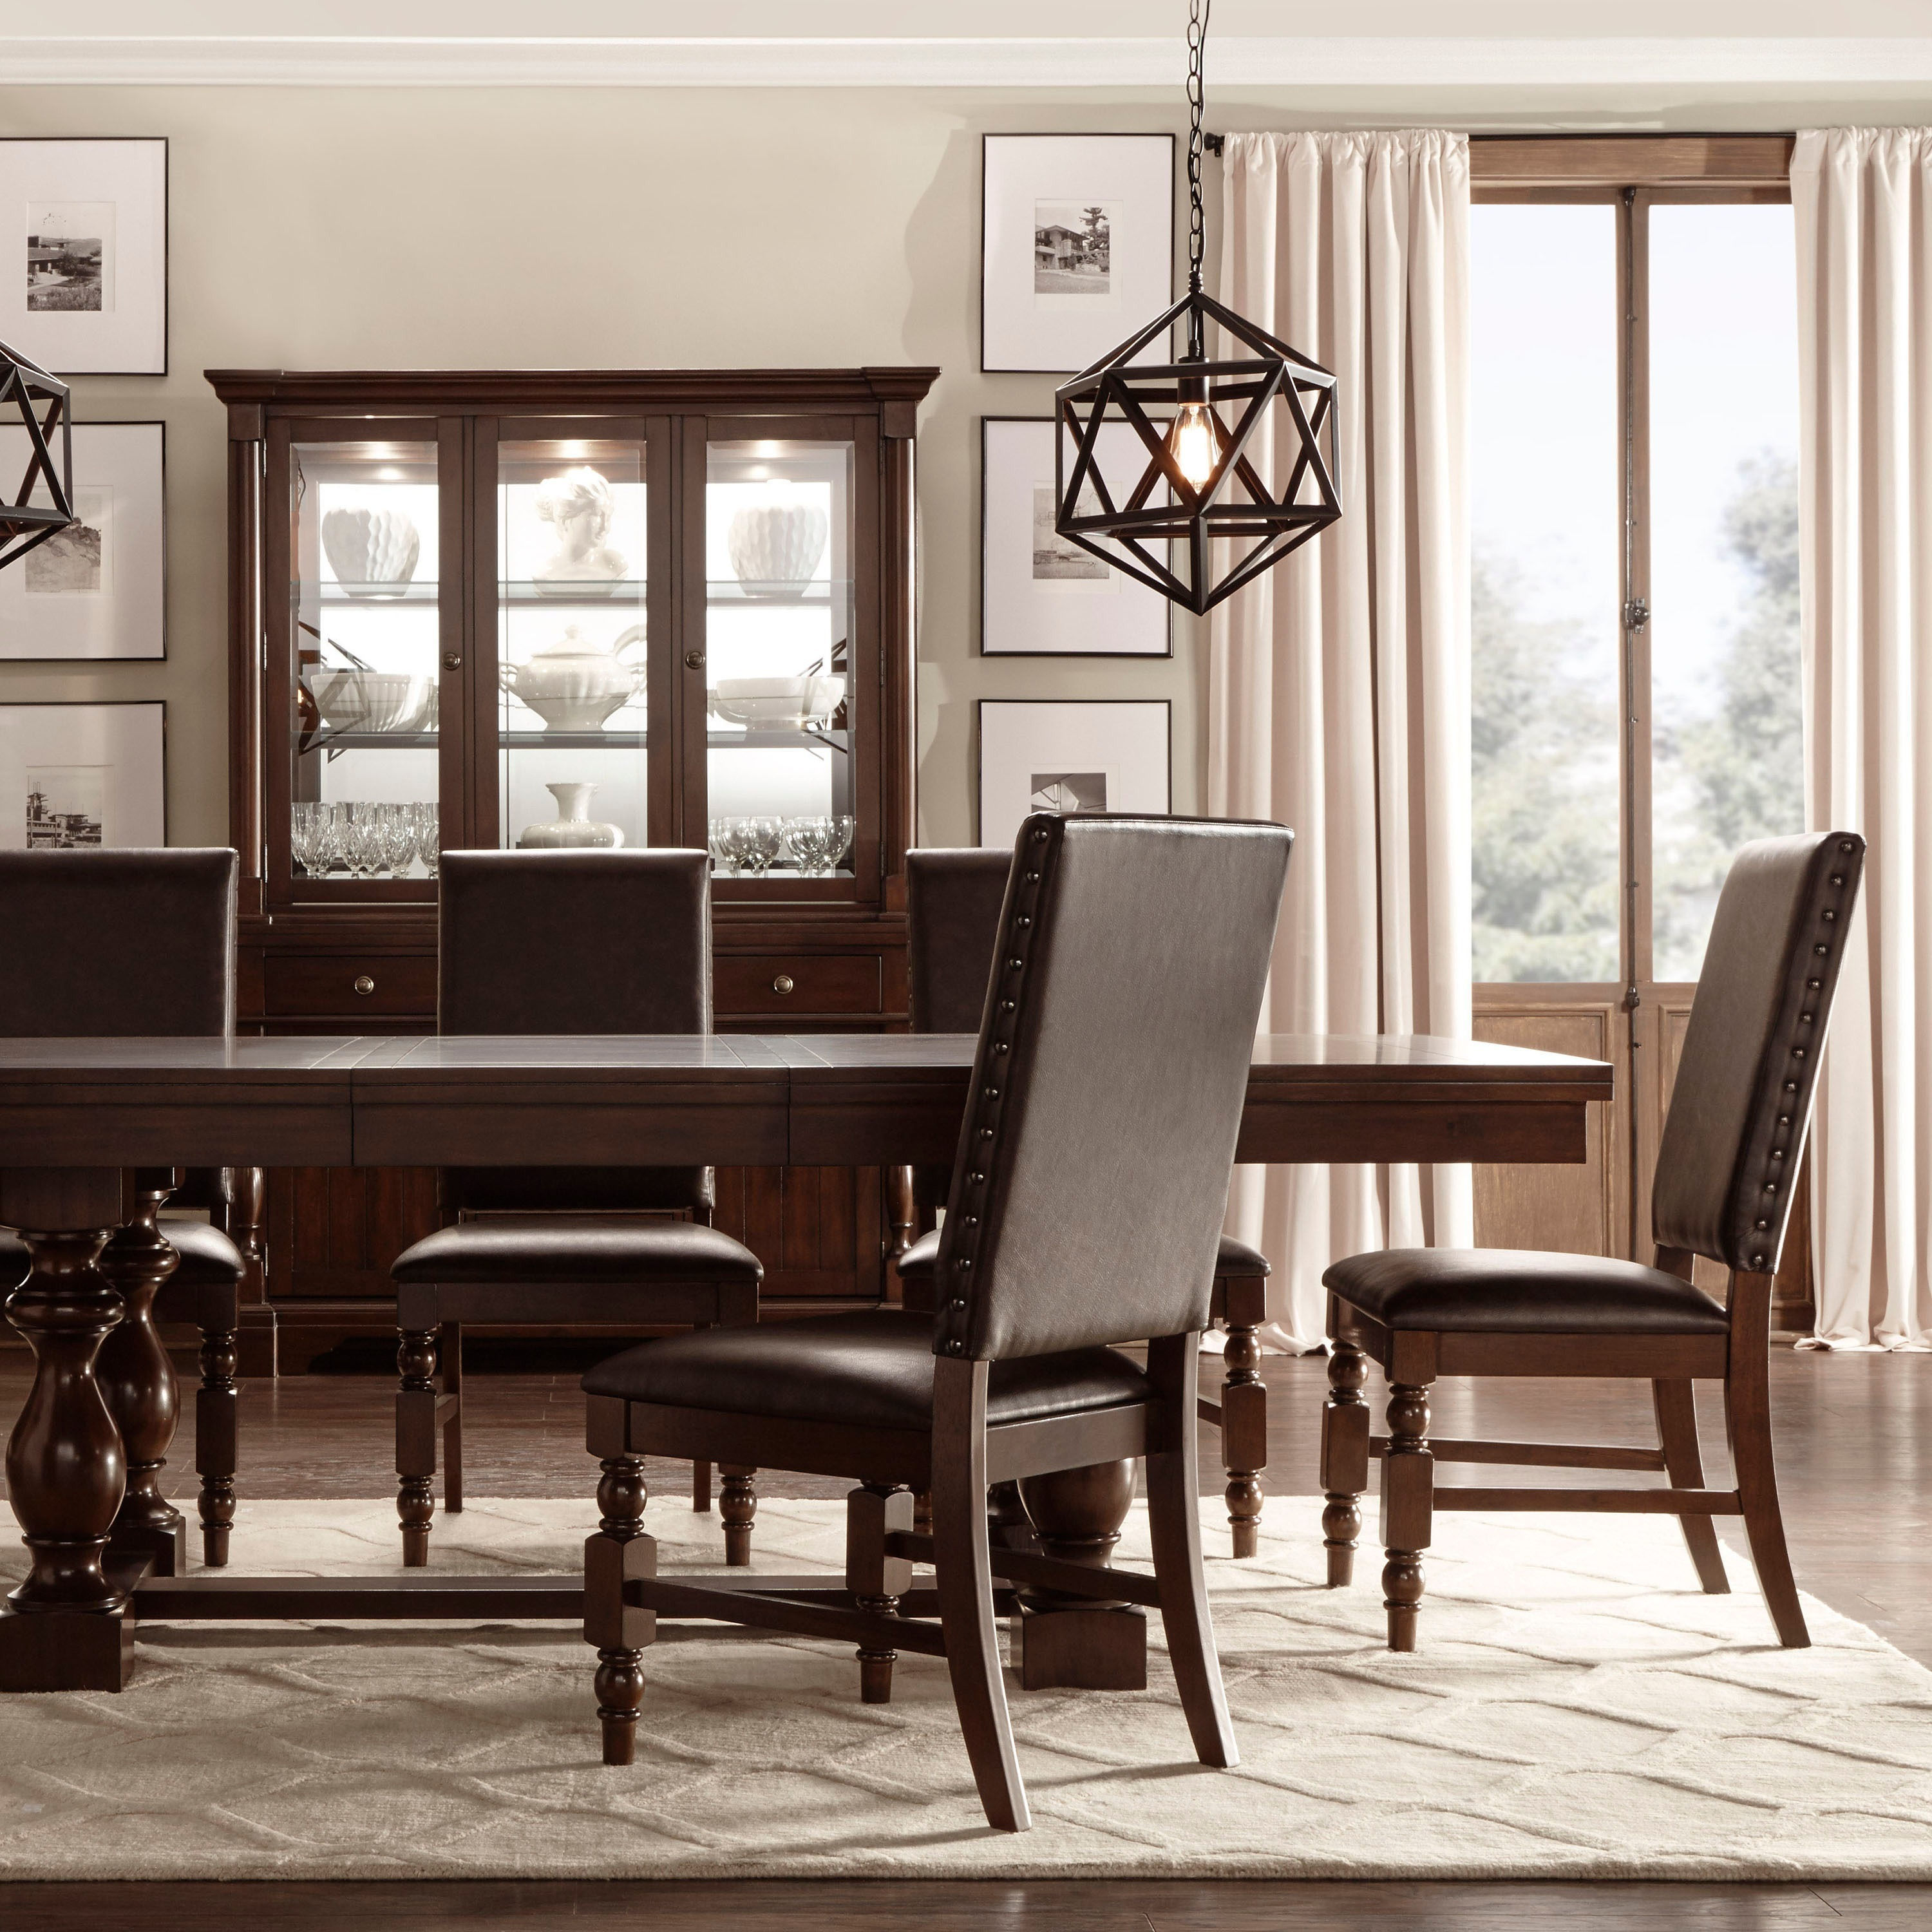 Flatiron Nailhead Upholstered Dining Chairs Set of 2 by iNSPIRE Q